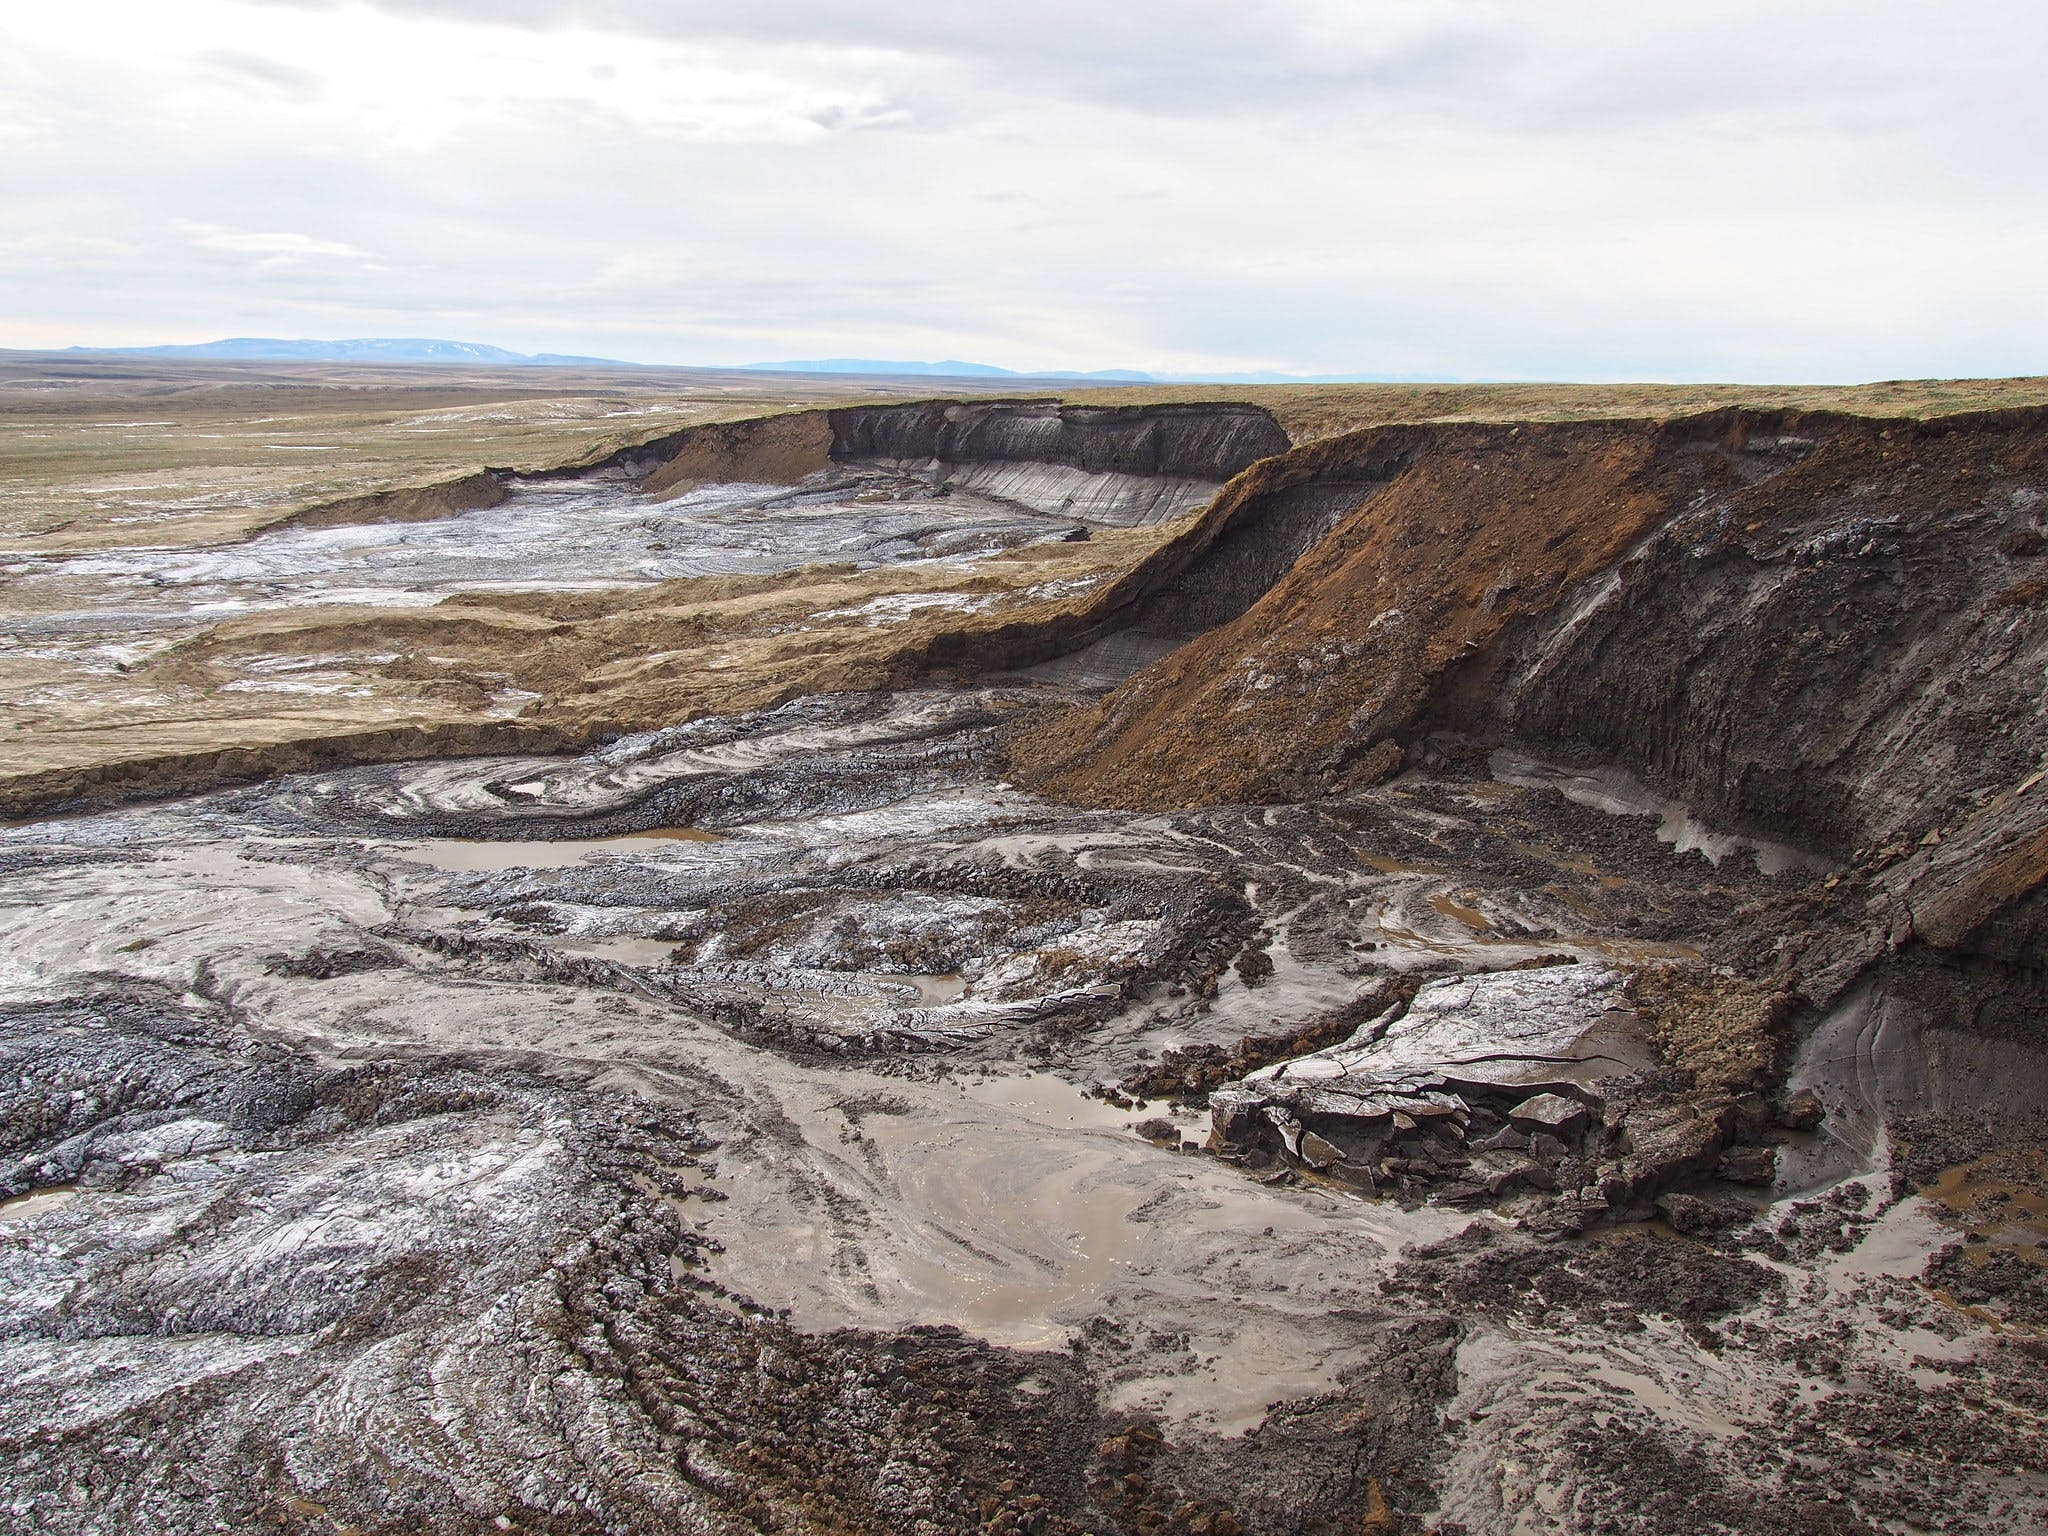 Permafrost thawing damages and disturbs soil